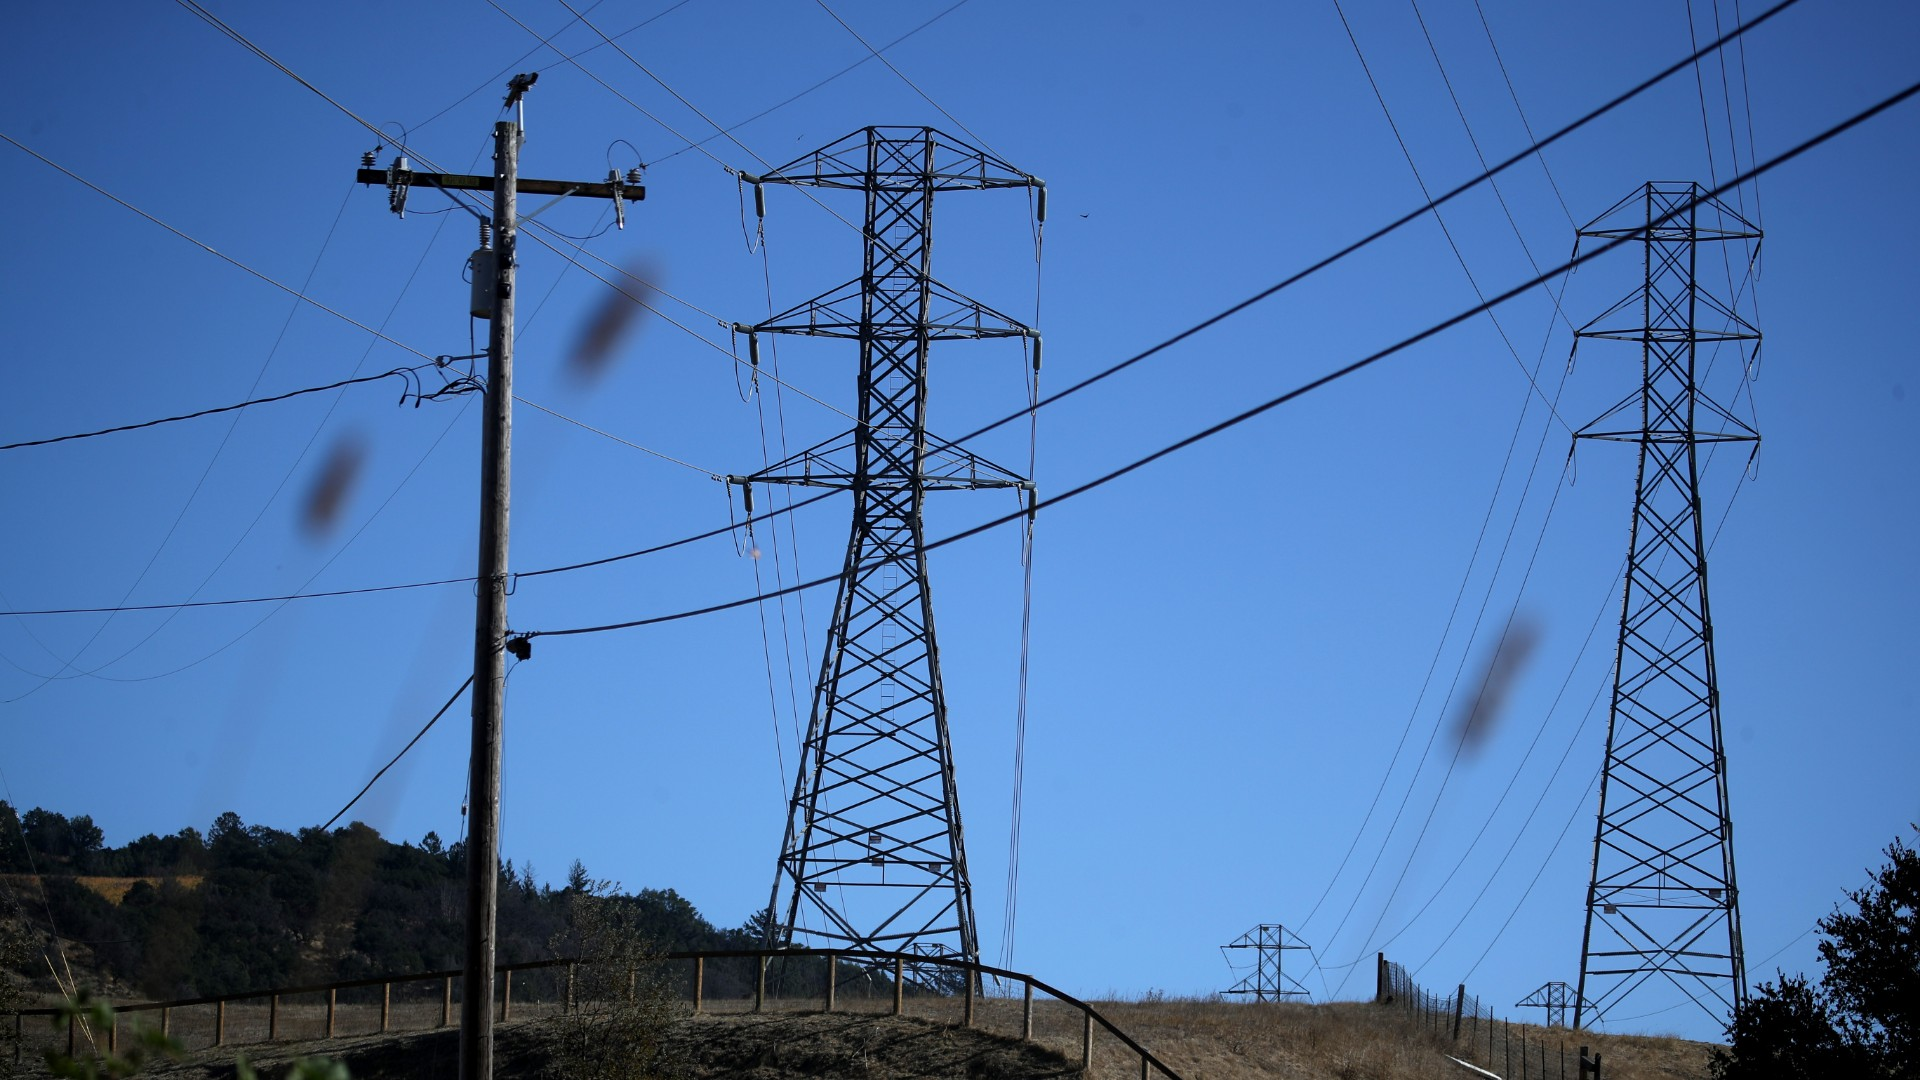 A view of power lines during a Pacific Gas and Electric (PG&E) public safety power shutoff on November 20, 2019 in Santa Rosa, California. PG&E has cut power to over 450,000 residents throughout Northern California as extremely windy and dry conditions are increasing the risk of catastrophic wildfires. (Justin Sullivan/Getty Images)